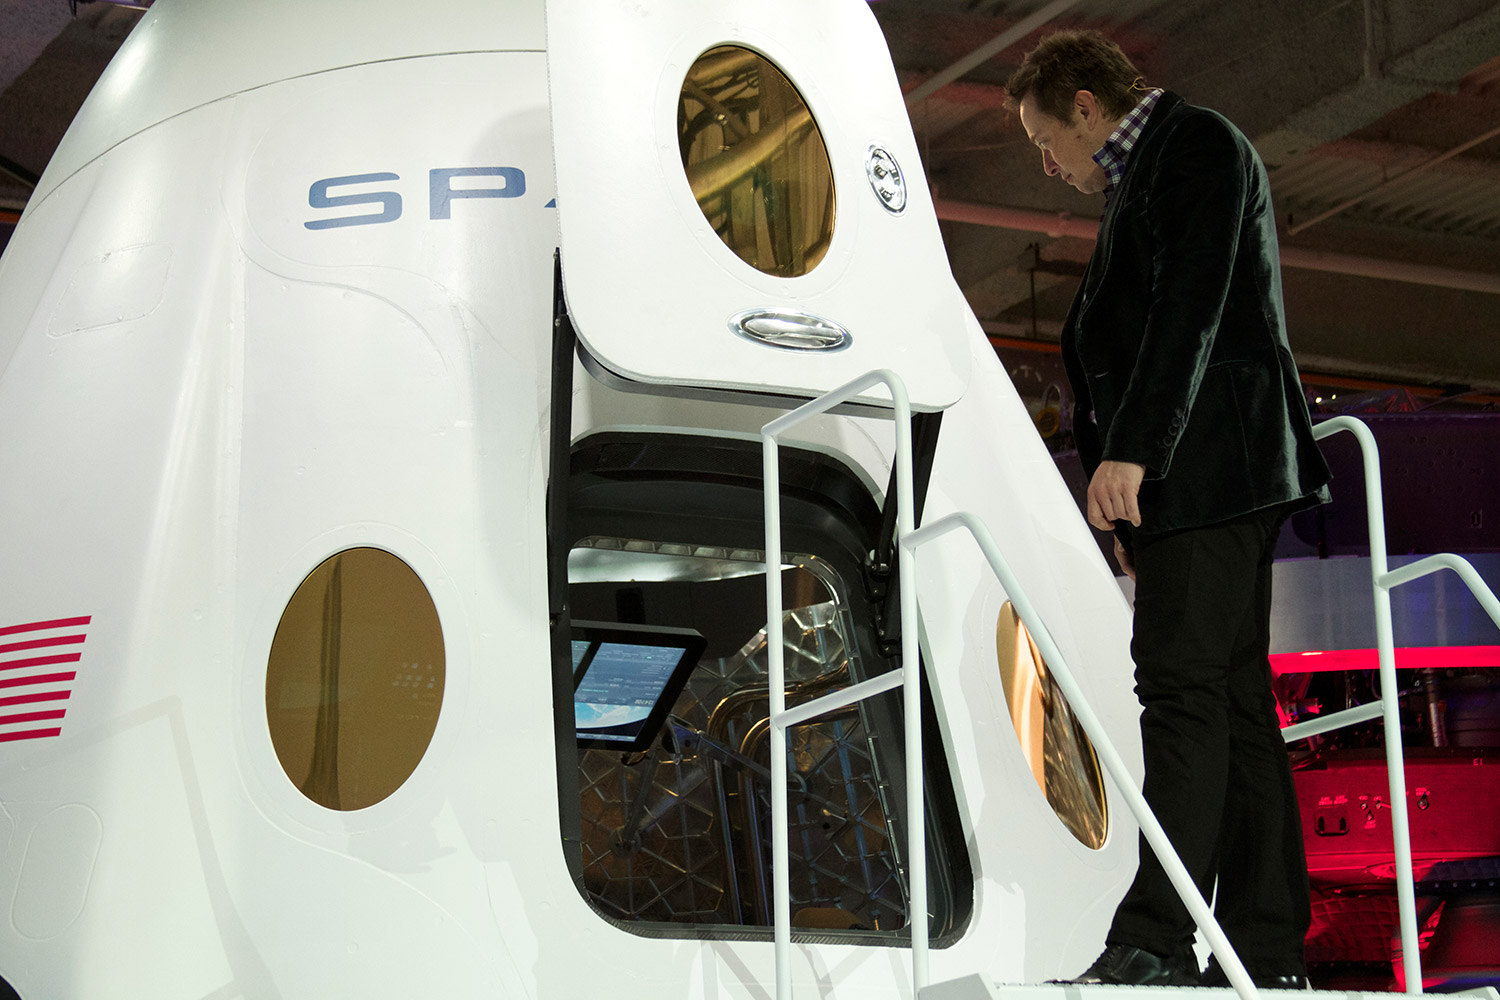 SpaceX founder Elon Musk gives a peek inside the next generation Dragon space capsule during a media event to reveal the new design. The Dragon V2 will be the first man-rated spacecraft from the private company. Credit: Brenden Clark